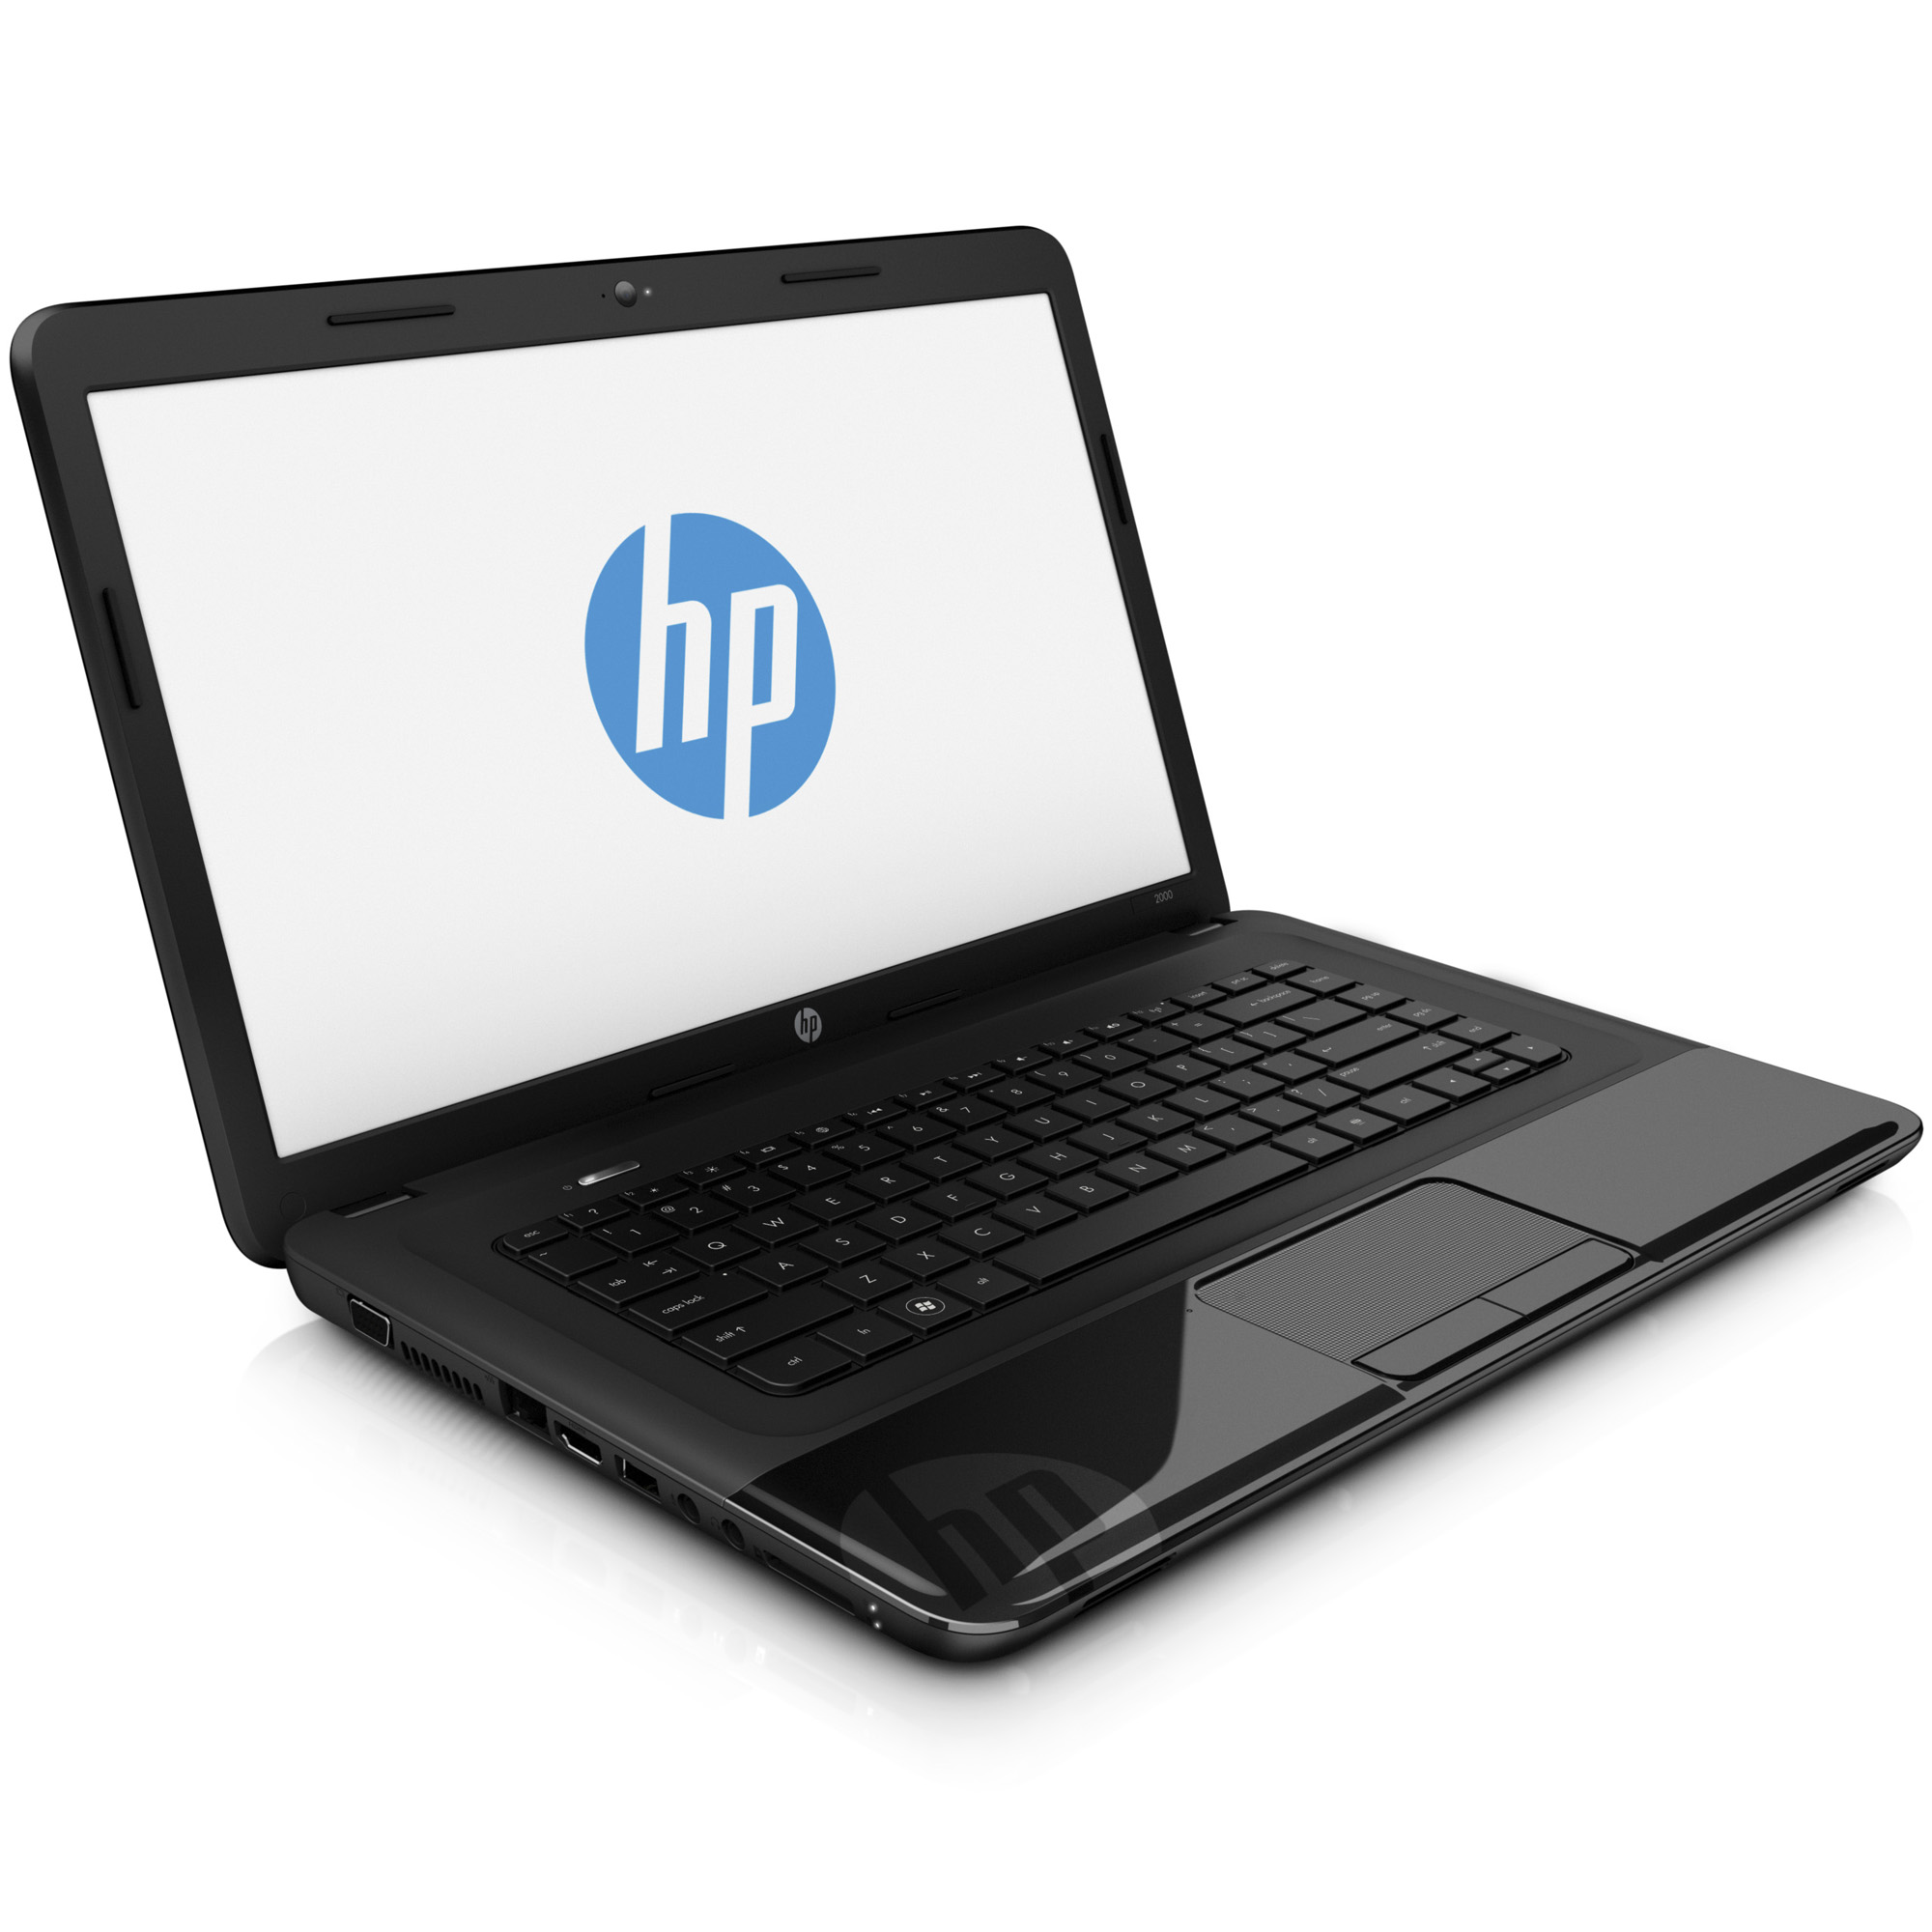 Laptop HP 2000-2d01SQ - Intel i3-3110M 2.40GHz, Ivy Bridge, 4GB, 750GB